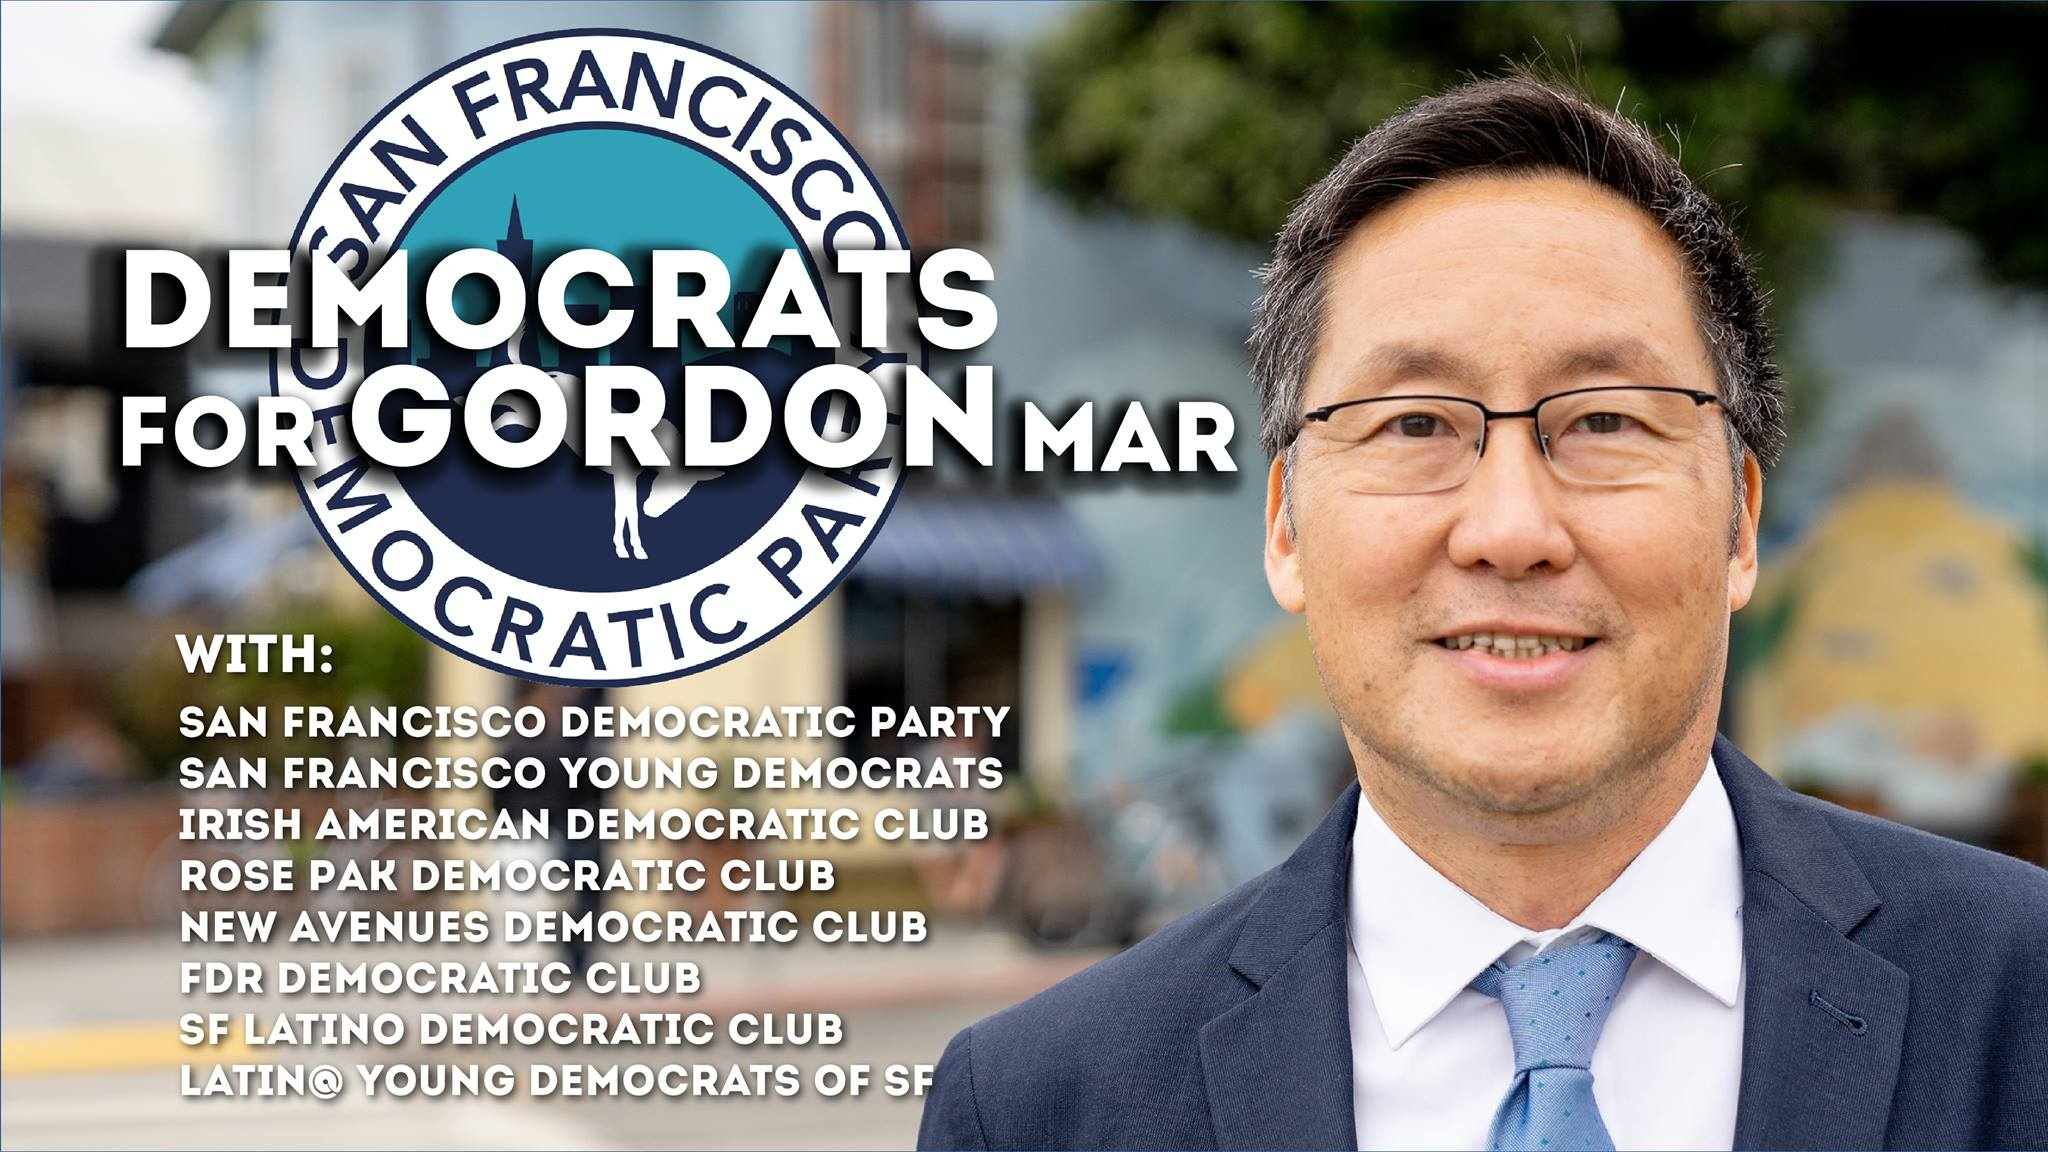 democrats-gordon-mar.jpg